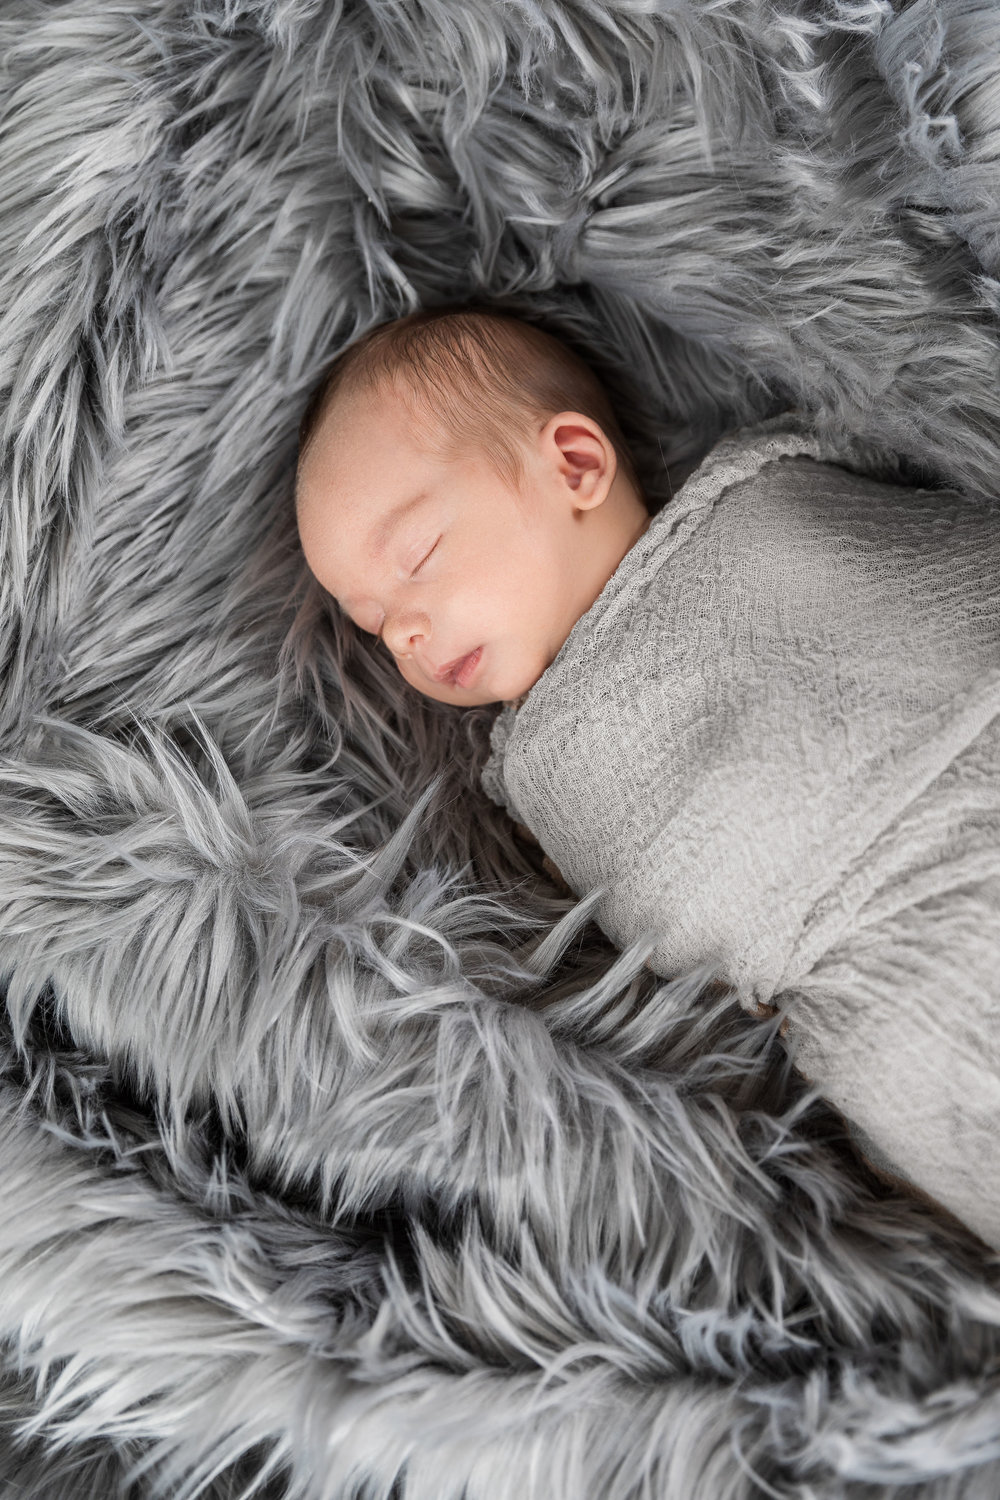 1 month old boy sleeping in a gray wrap on gray fur james korin portrait photography home session.jpg